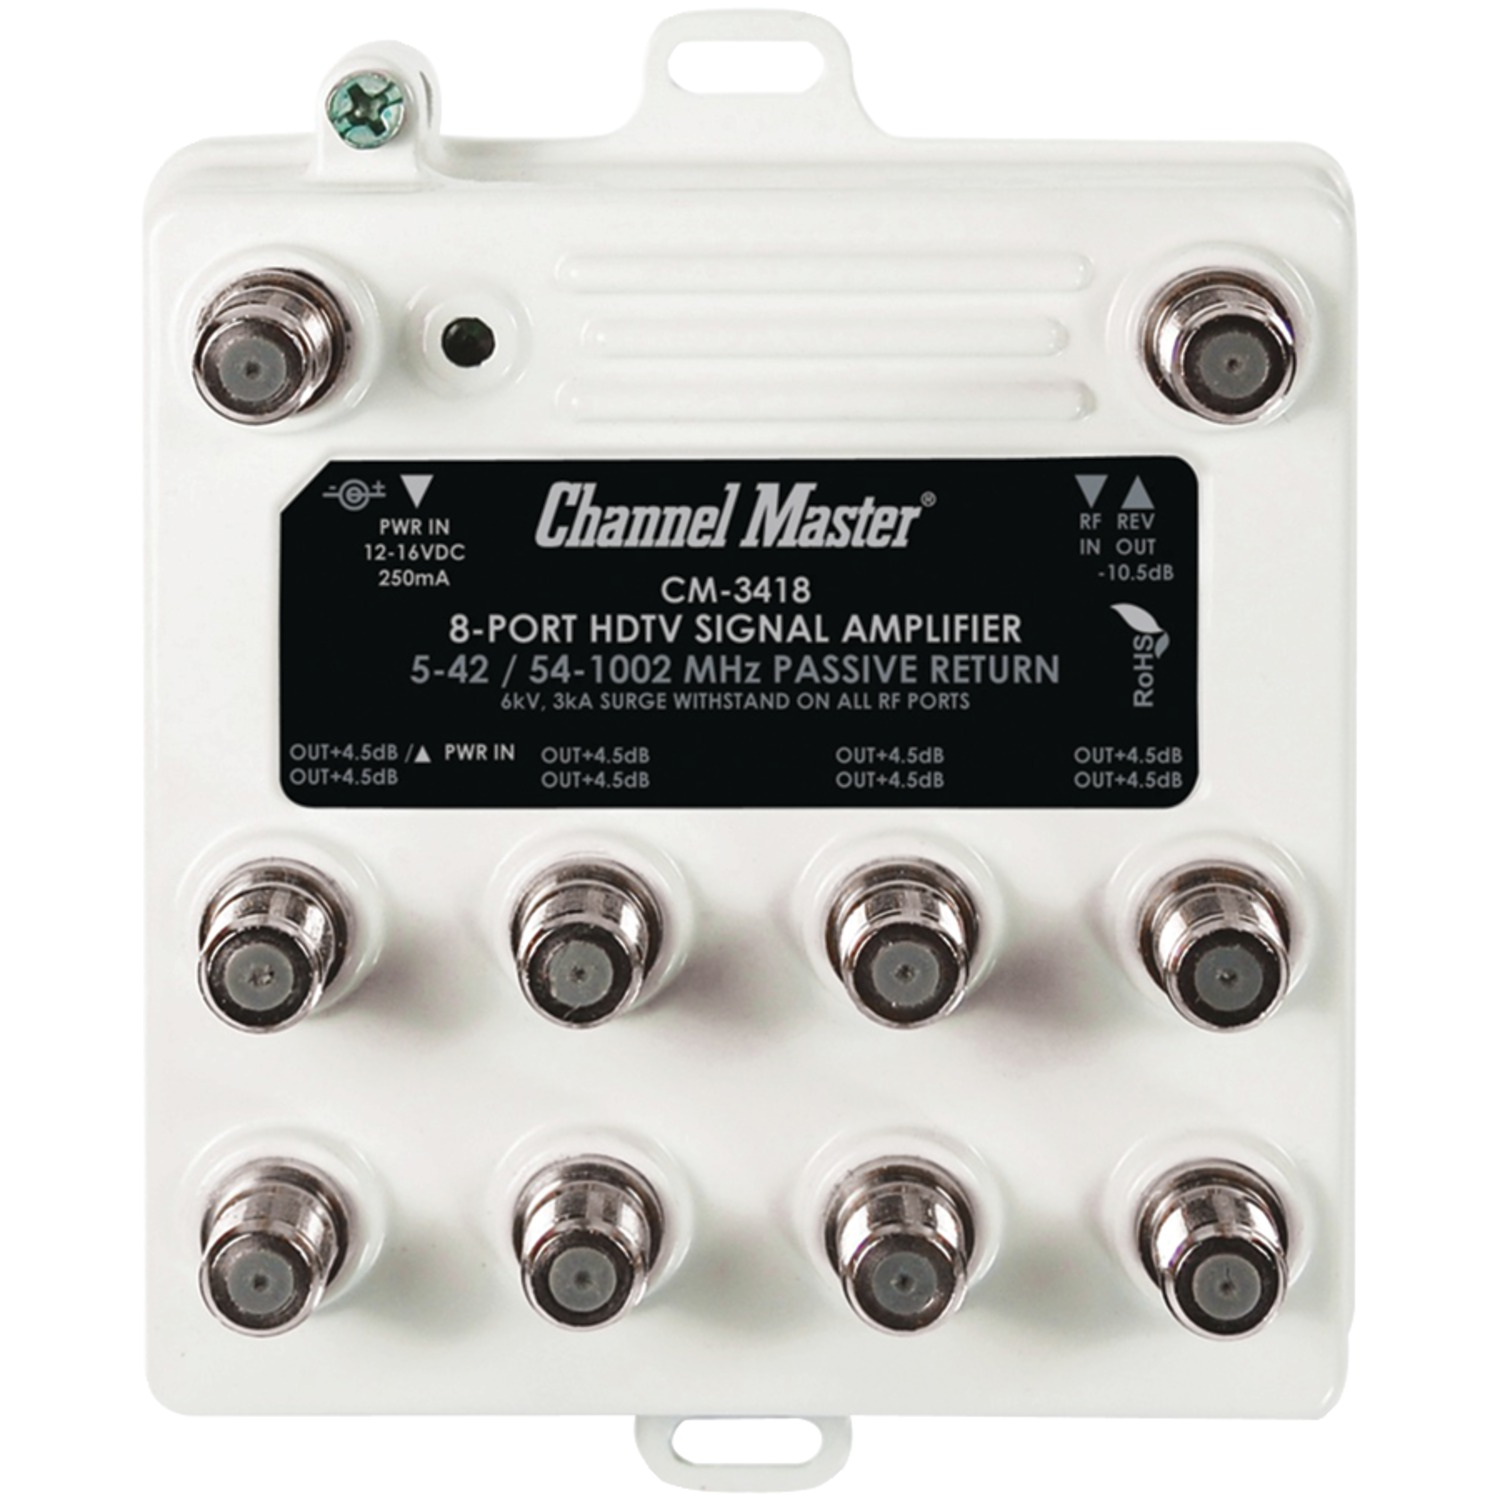 Channel Master Cm-3418 Ultra Mini Distribution Amp (8 Port)